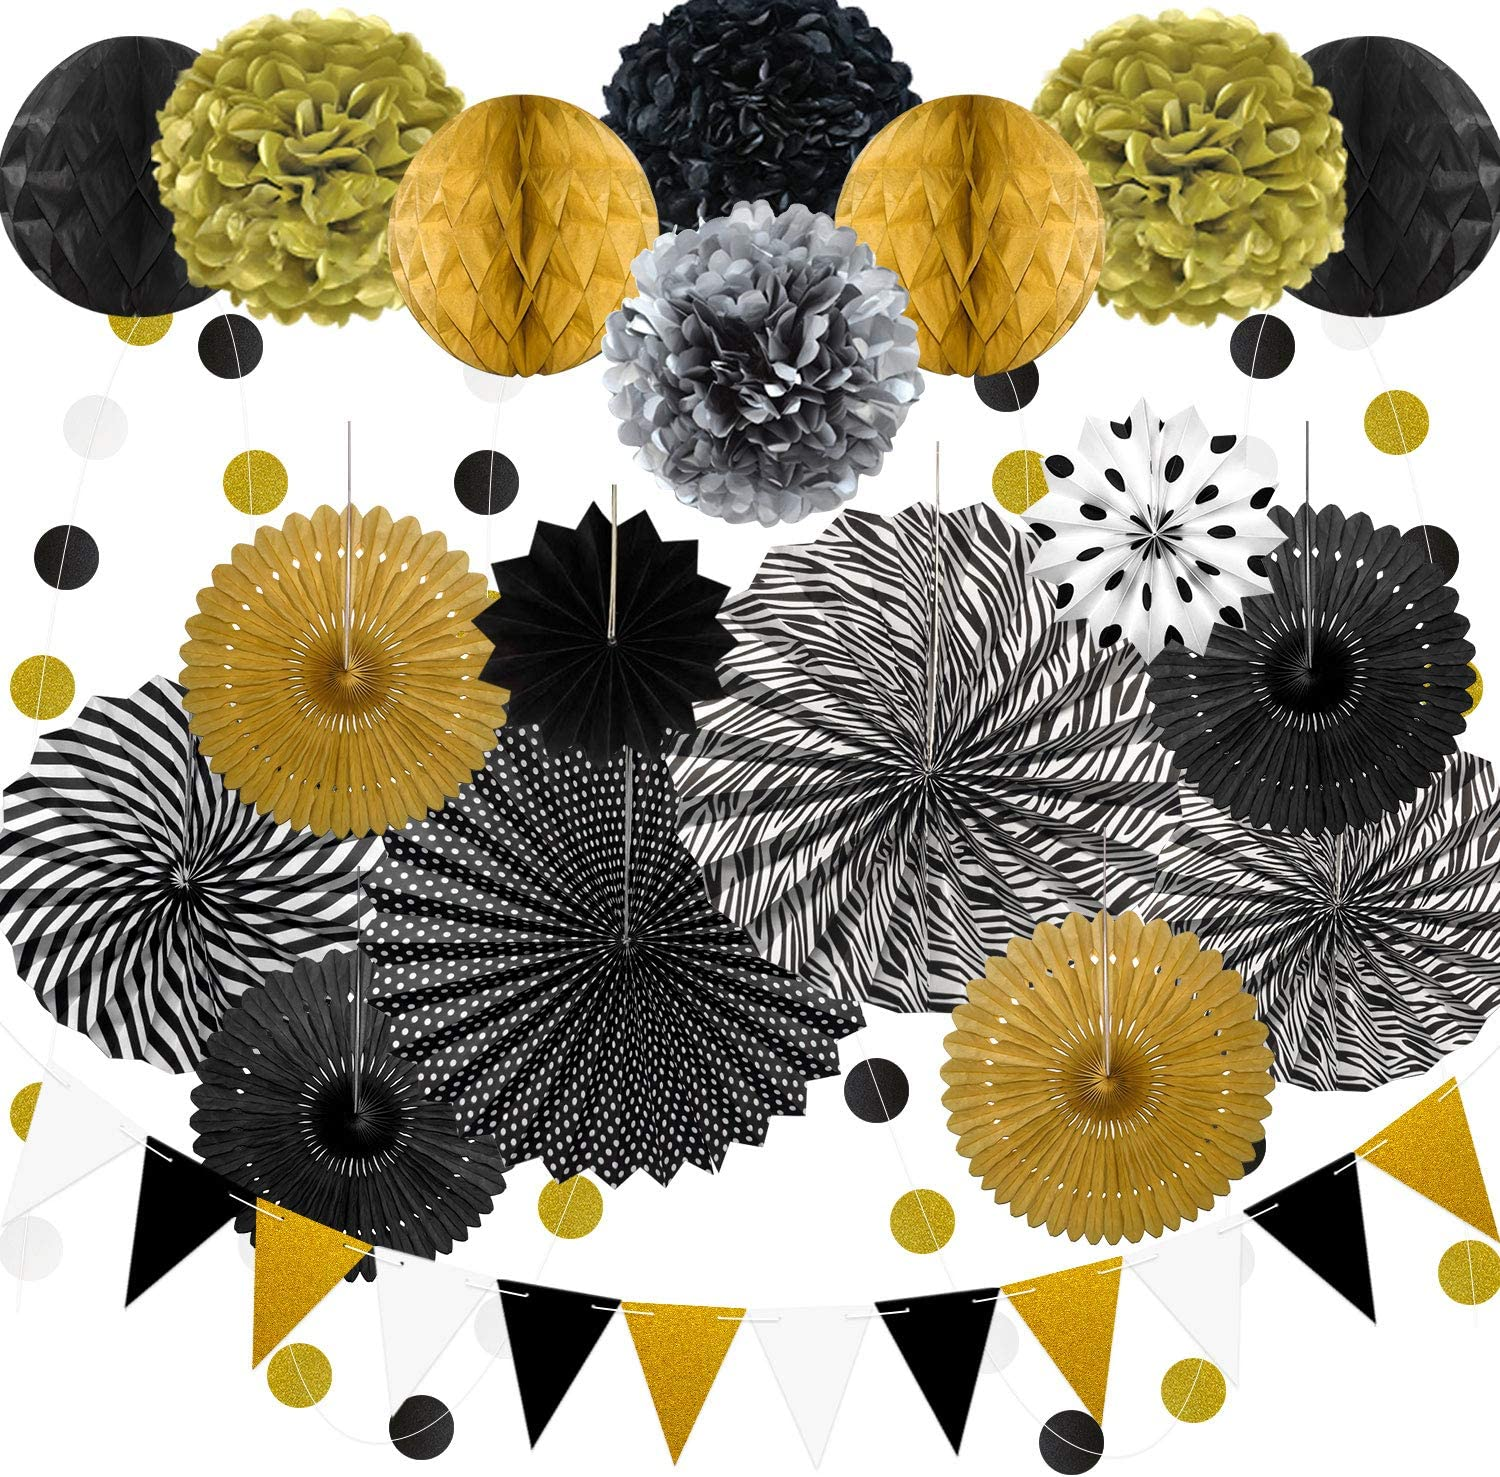 23Pcs Paper Fan Party Decoration, Black and Gold Hanging Paper Fans, Pom Poms Flowers, Garlands String Polka Dot and Bunting Flags for Birthday Party, New Year Parties, Bridal Showers, Wedding, Gradua